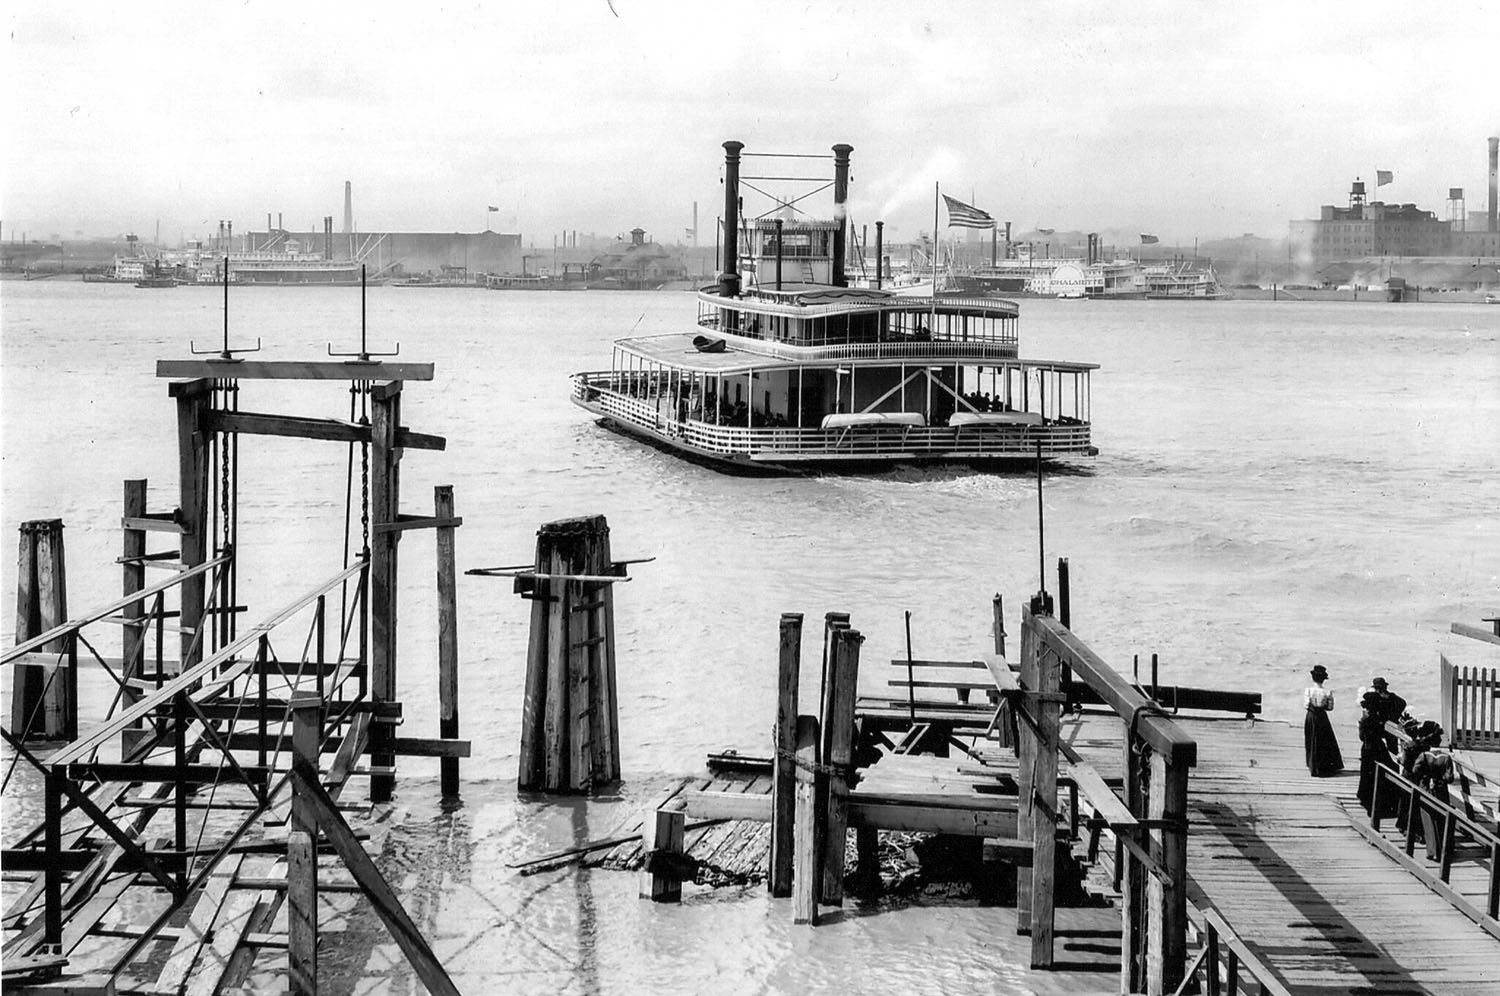 Caption for photo: The New Orleans ferry boat Thomas Pickles lasted for 73 years. (Keith Norrington collection)